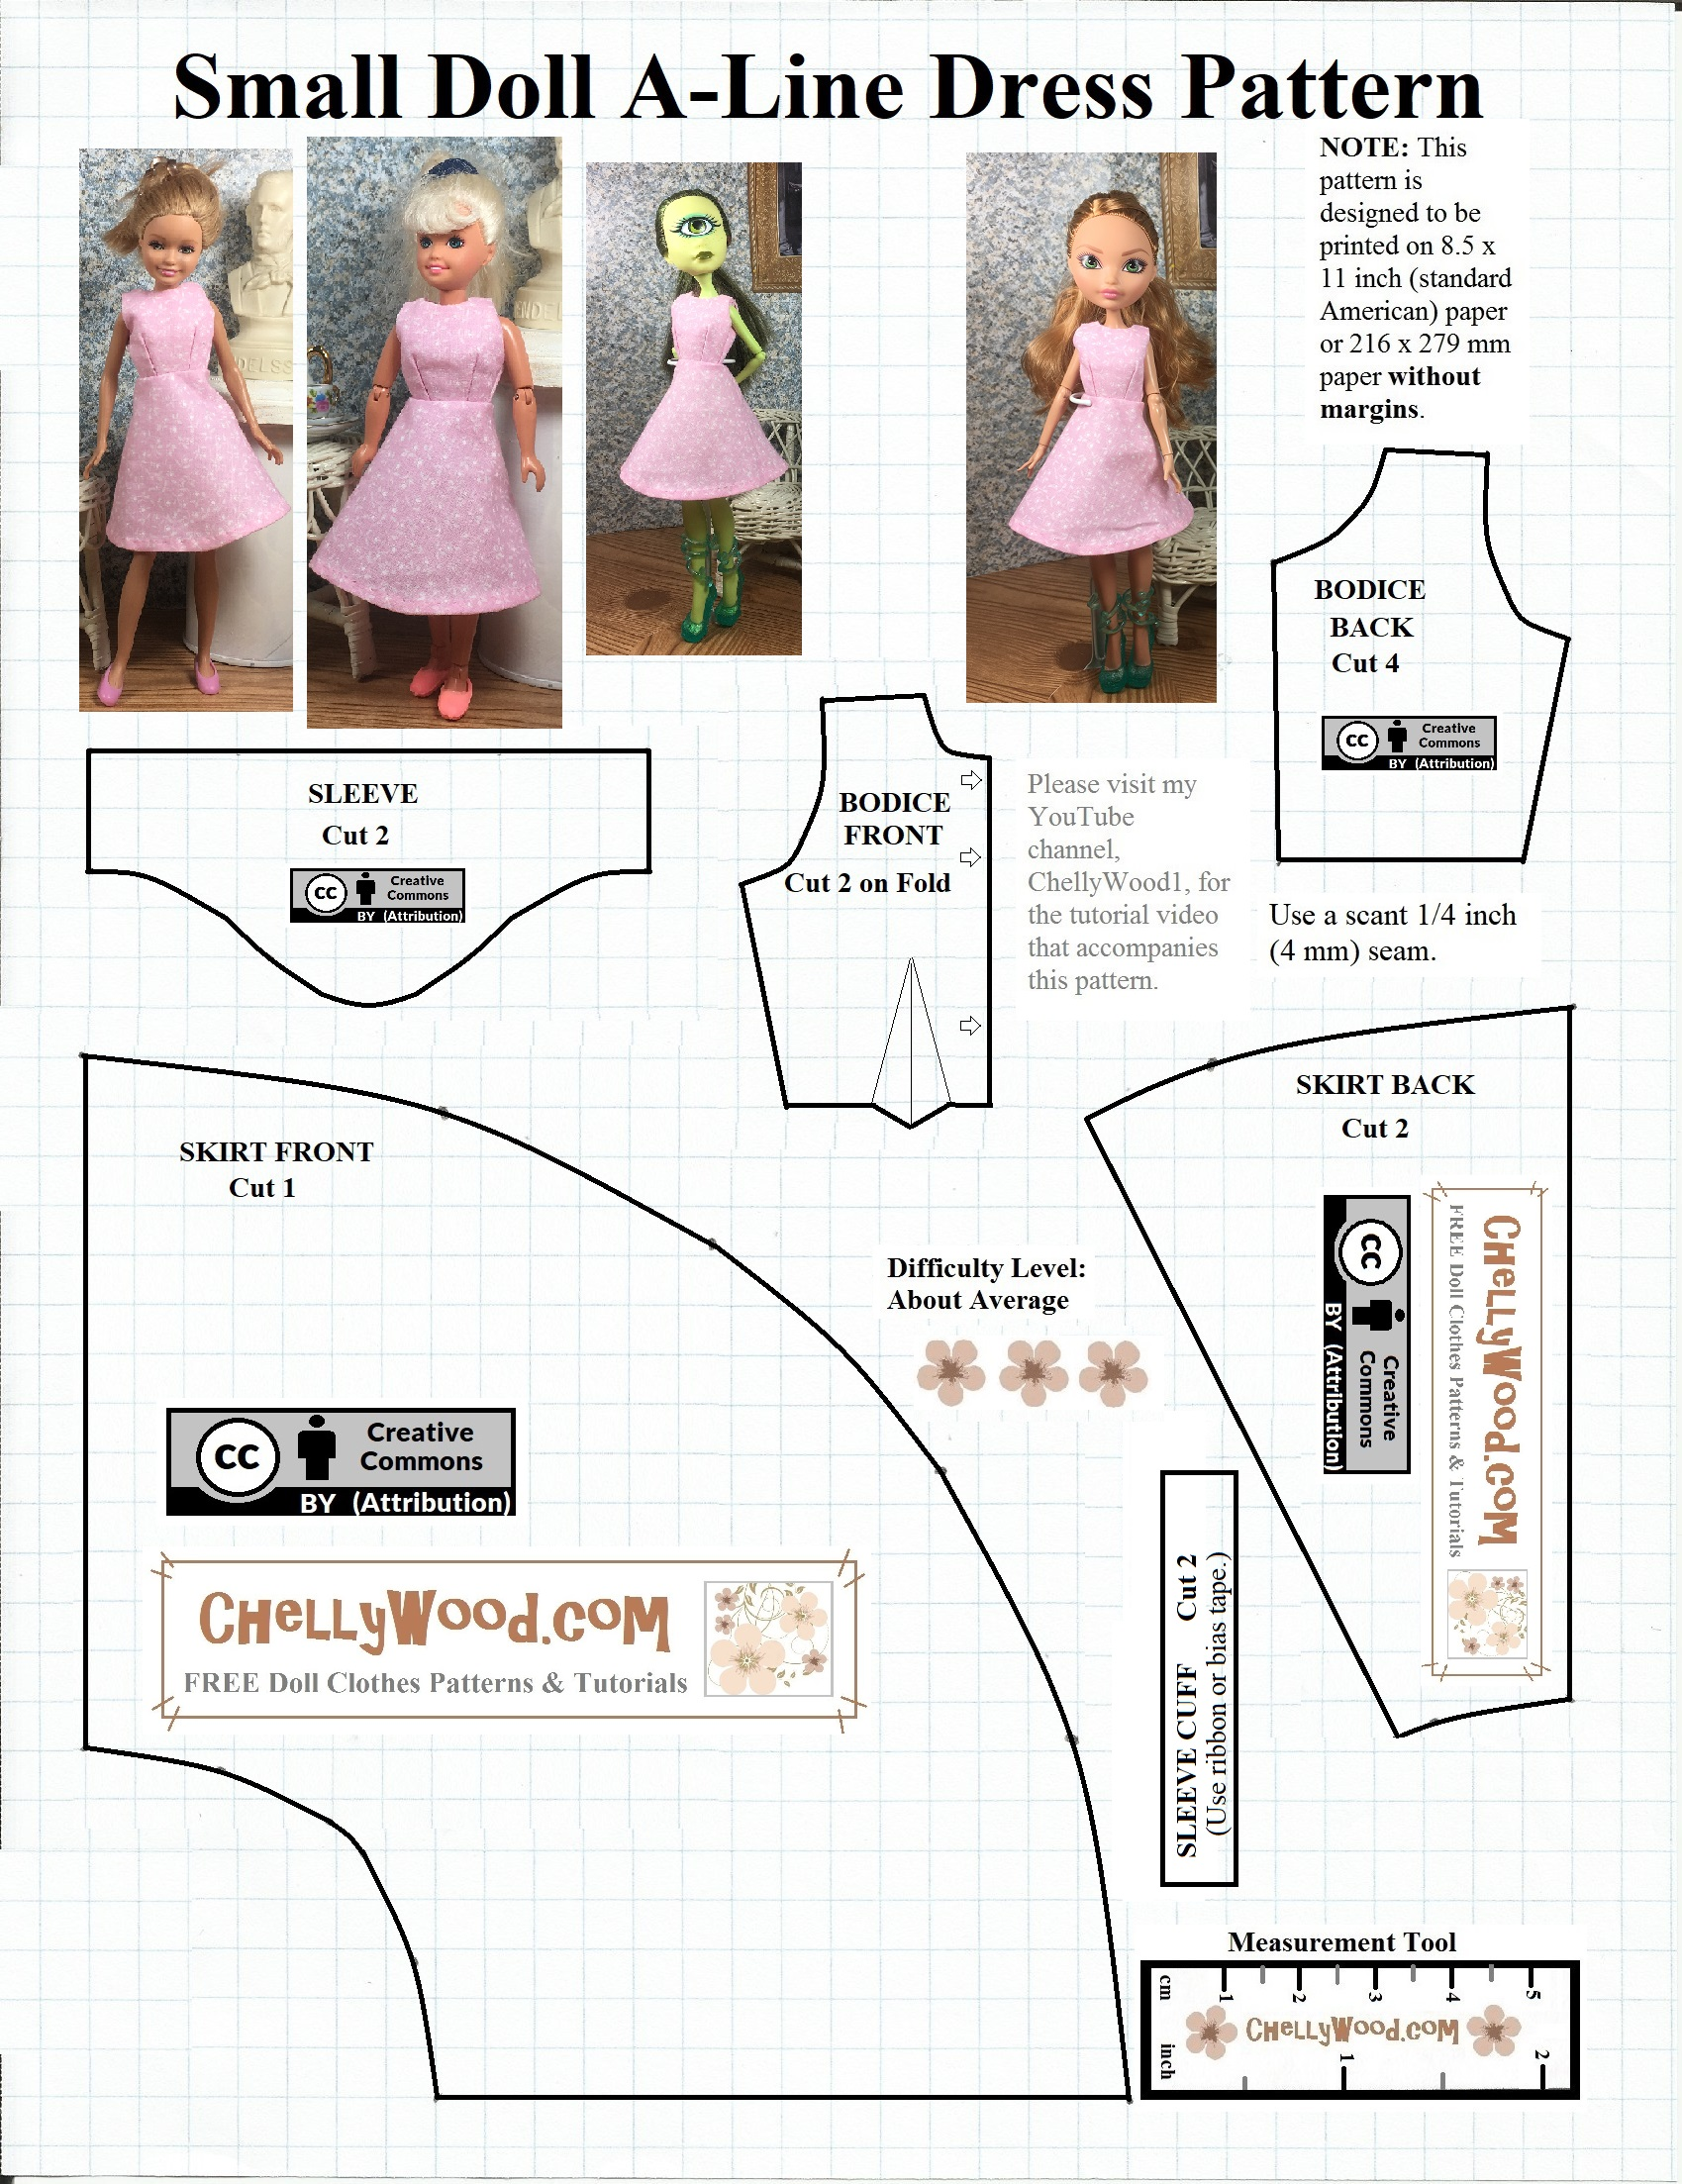 It's just a photo of Printable Sewing Pattern for bra